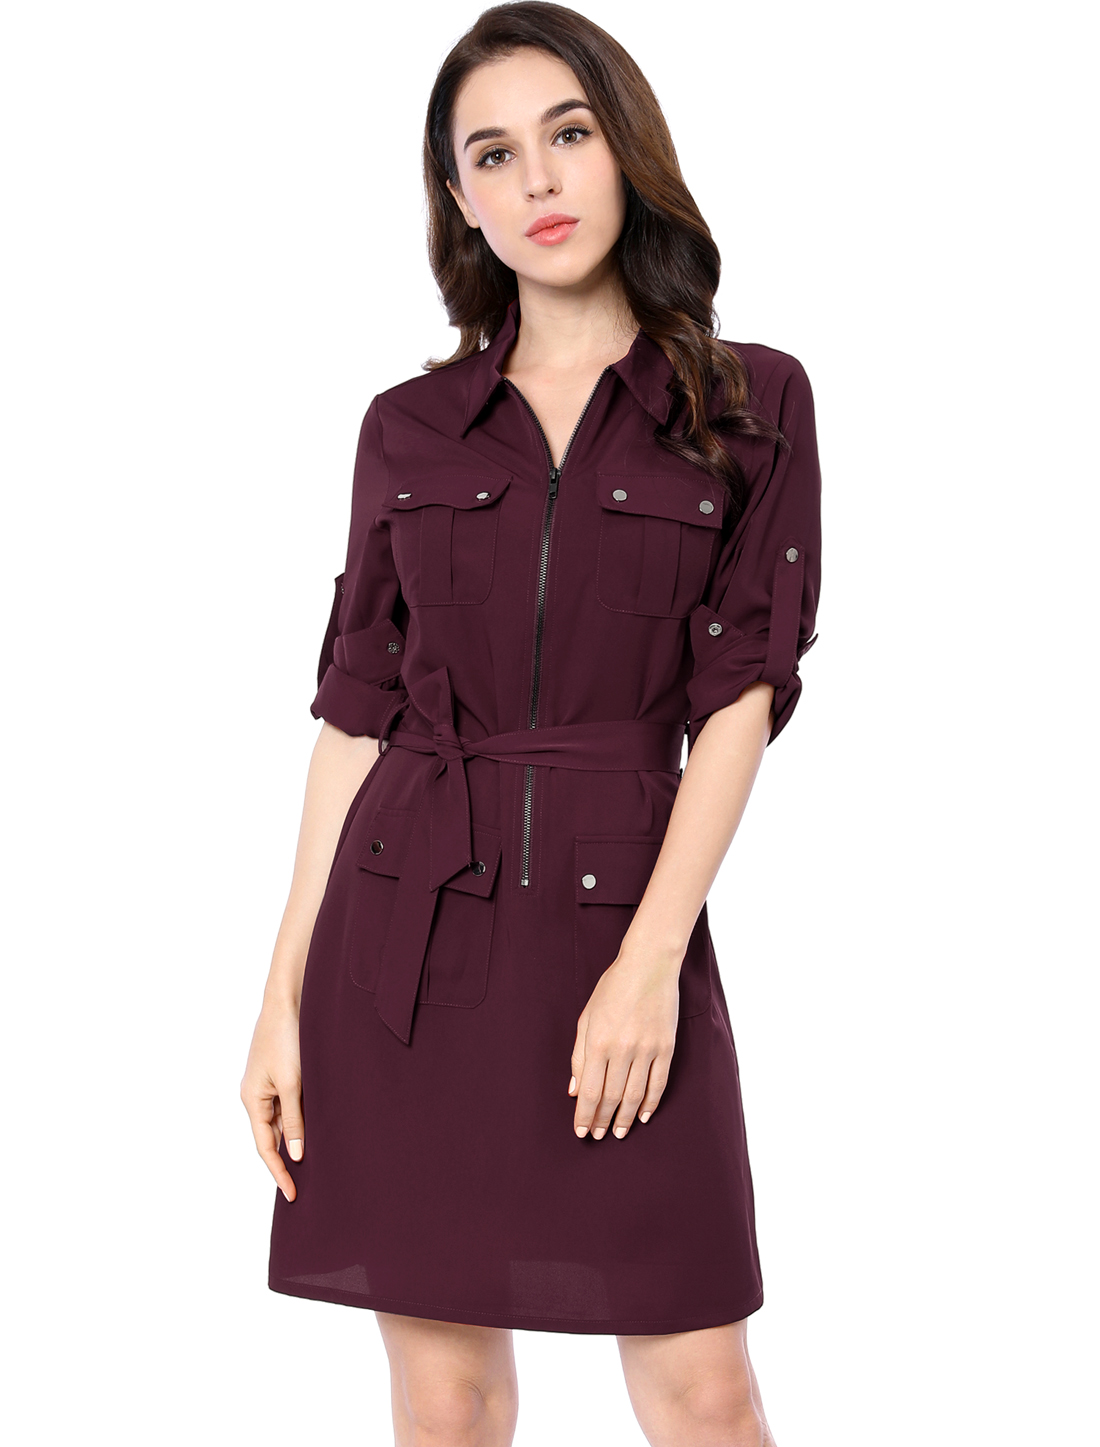 Women Roll Up Sleeves Multi-Pocket Belted Shirt Dress Red M